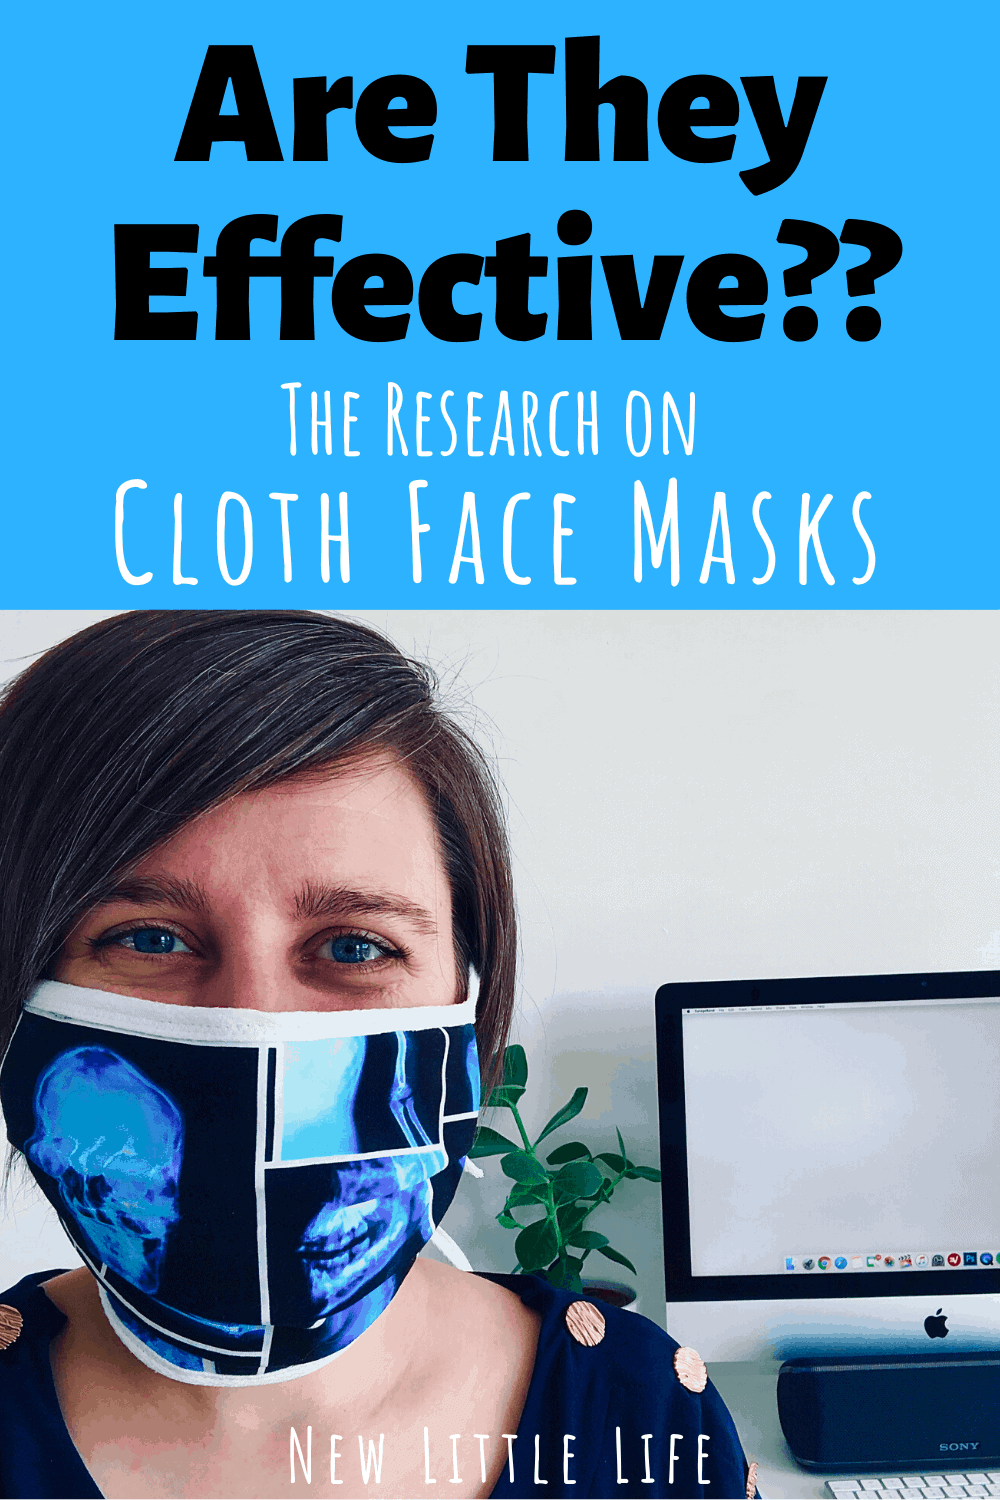 Research on Cloth Face Masks – ARE THEY EFFECTIVE??